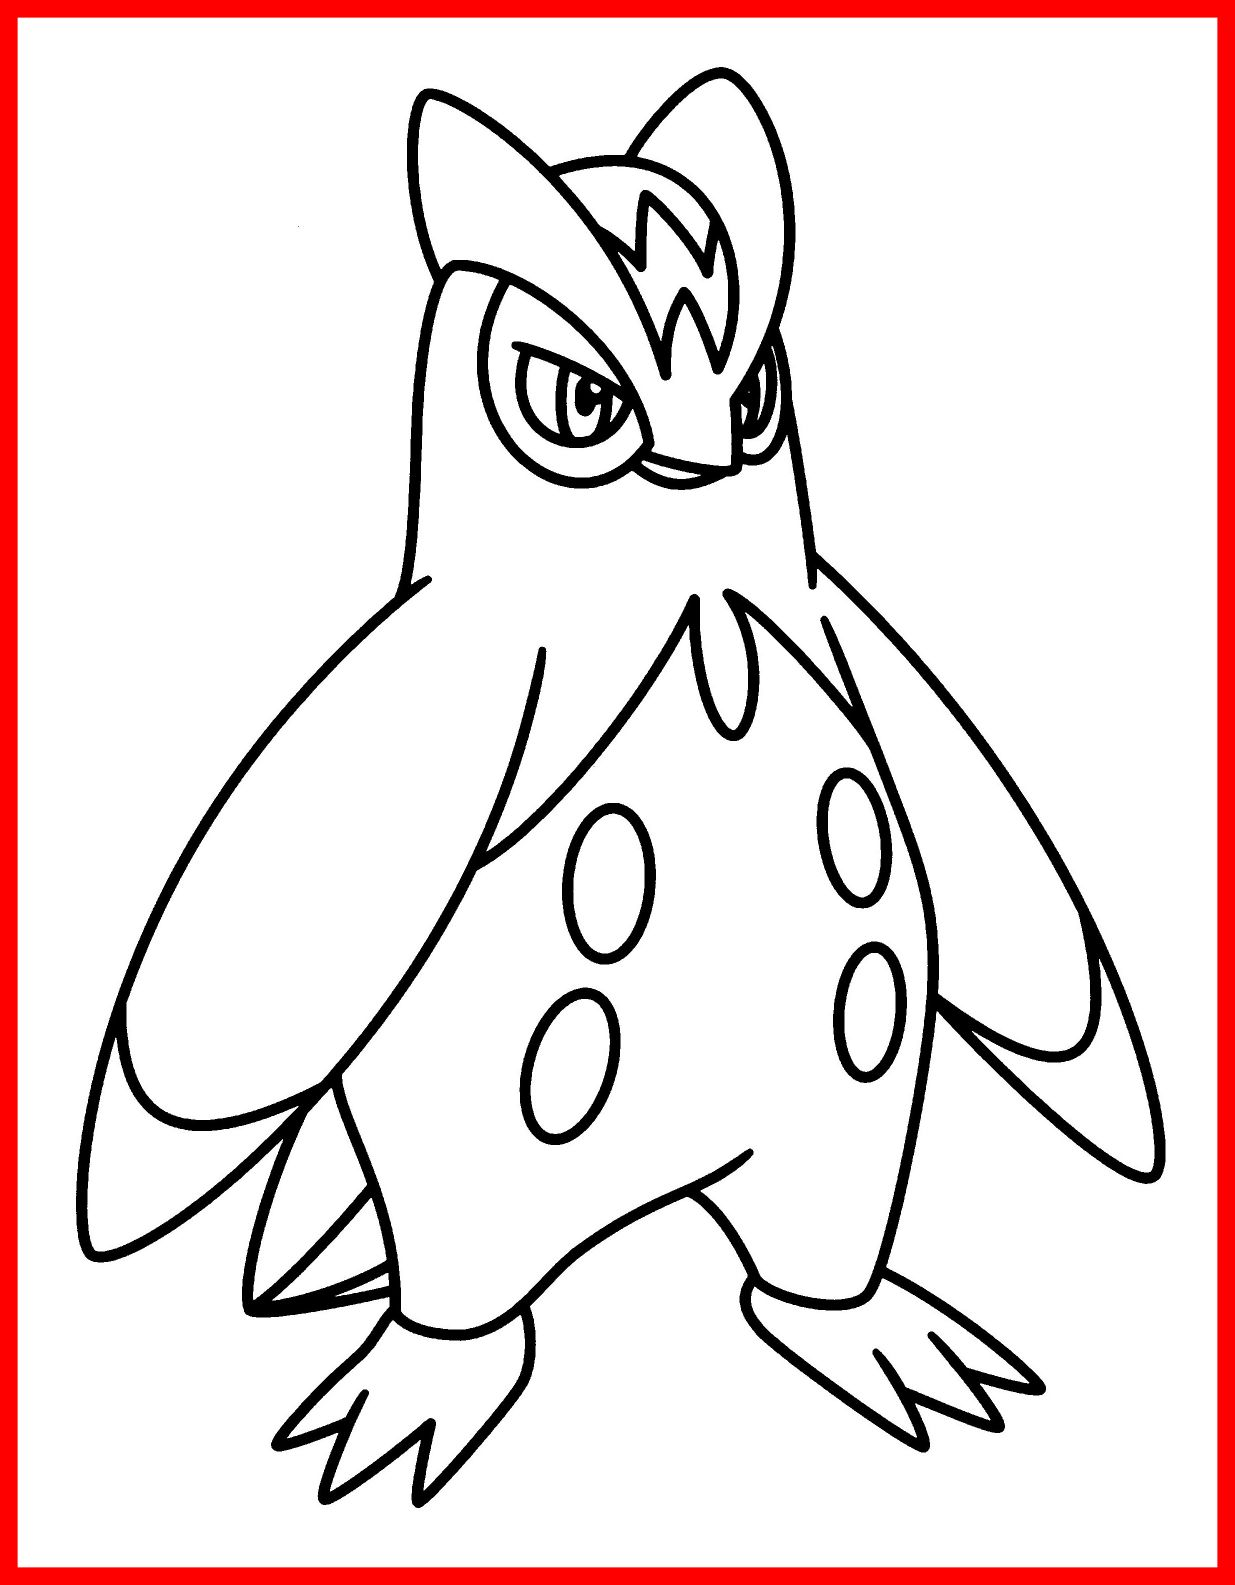 1235x1585 Inspiring Pokemon Coloring Pages Horsea And Seadra Pic For Trends